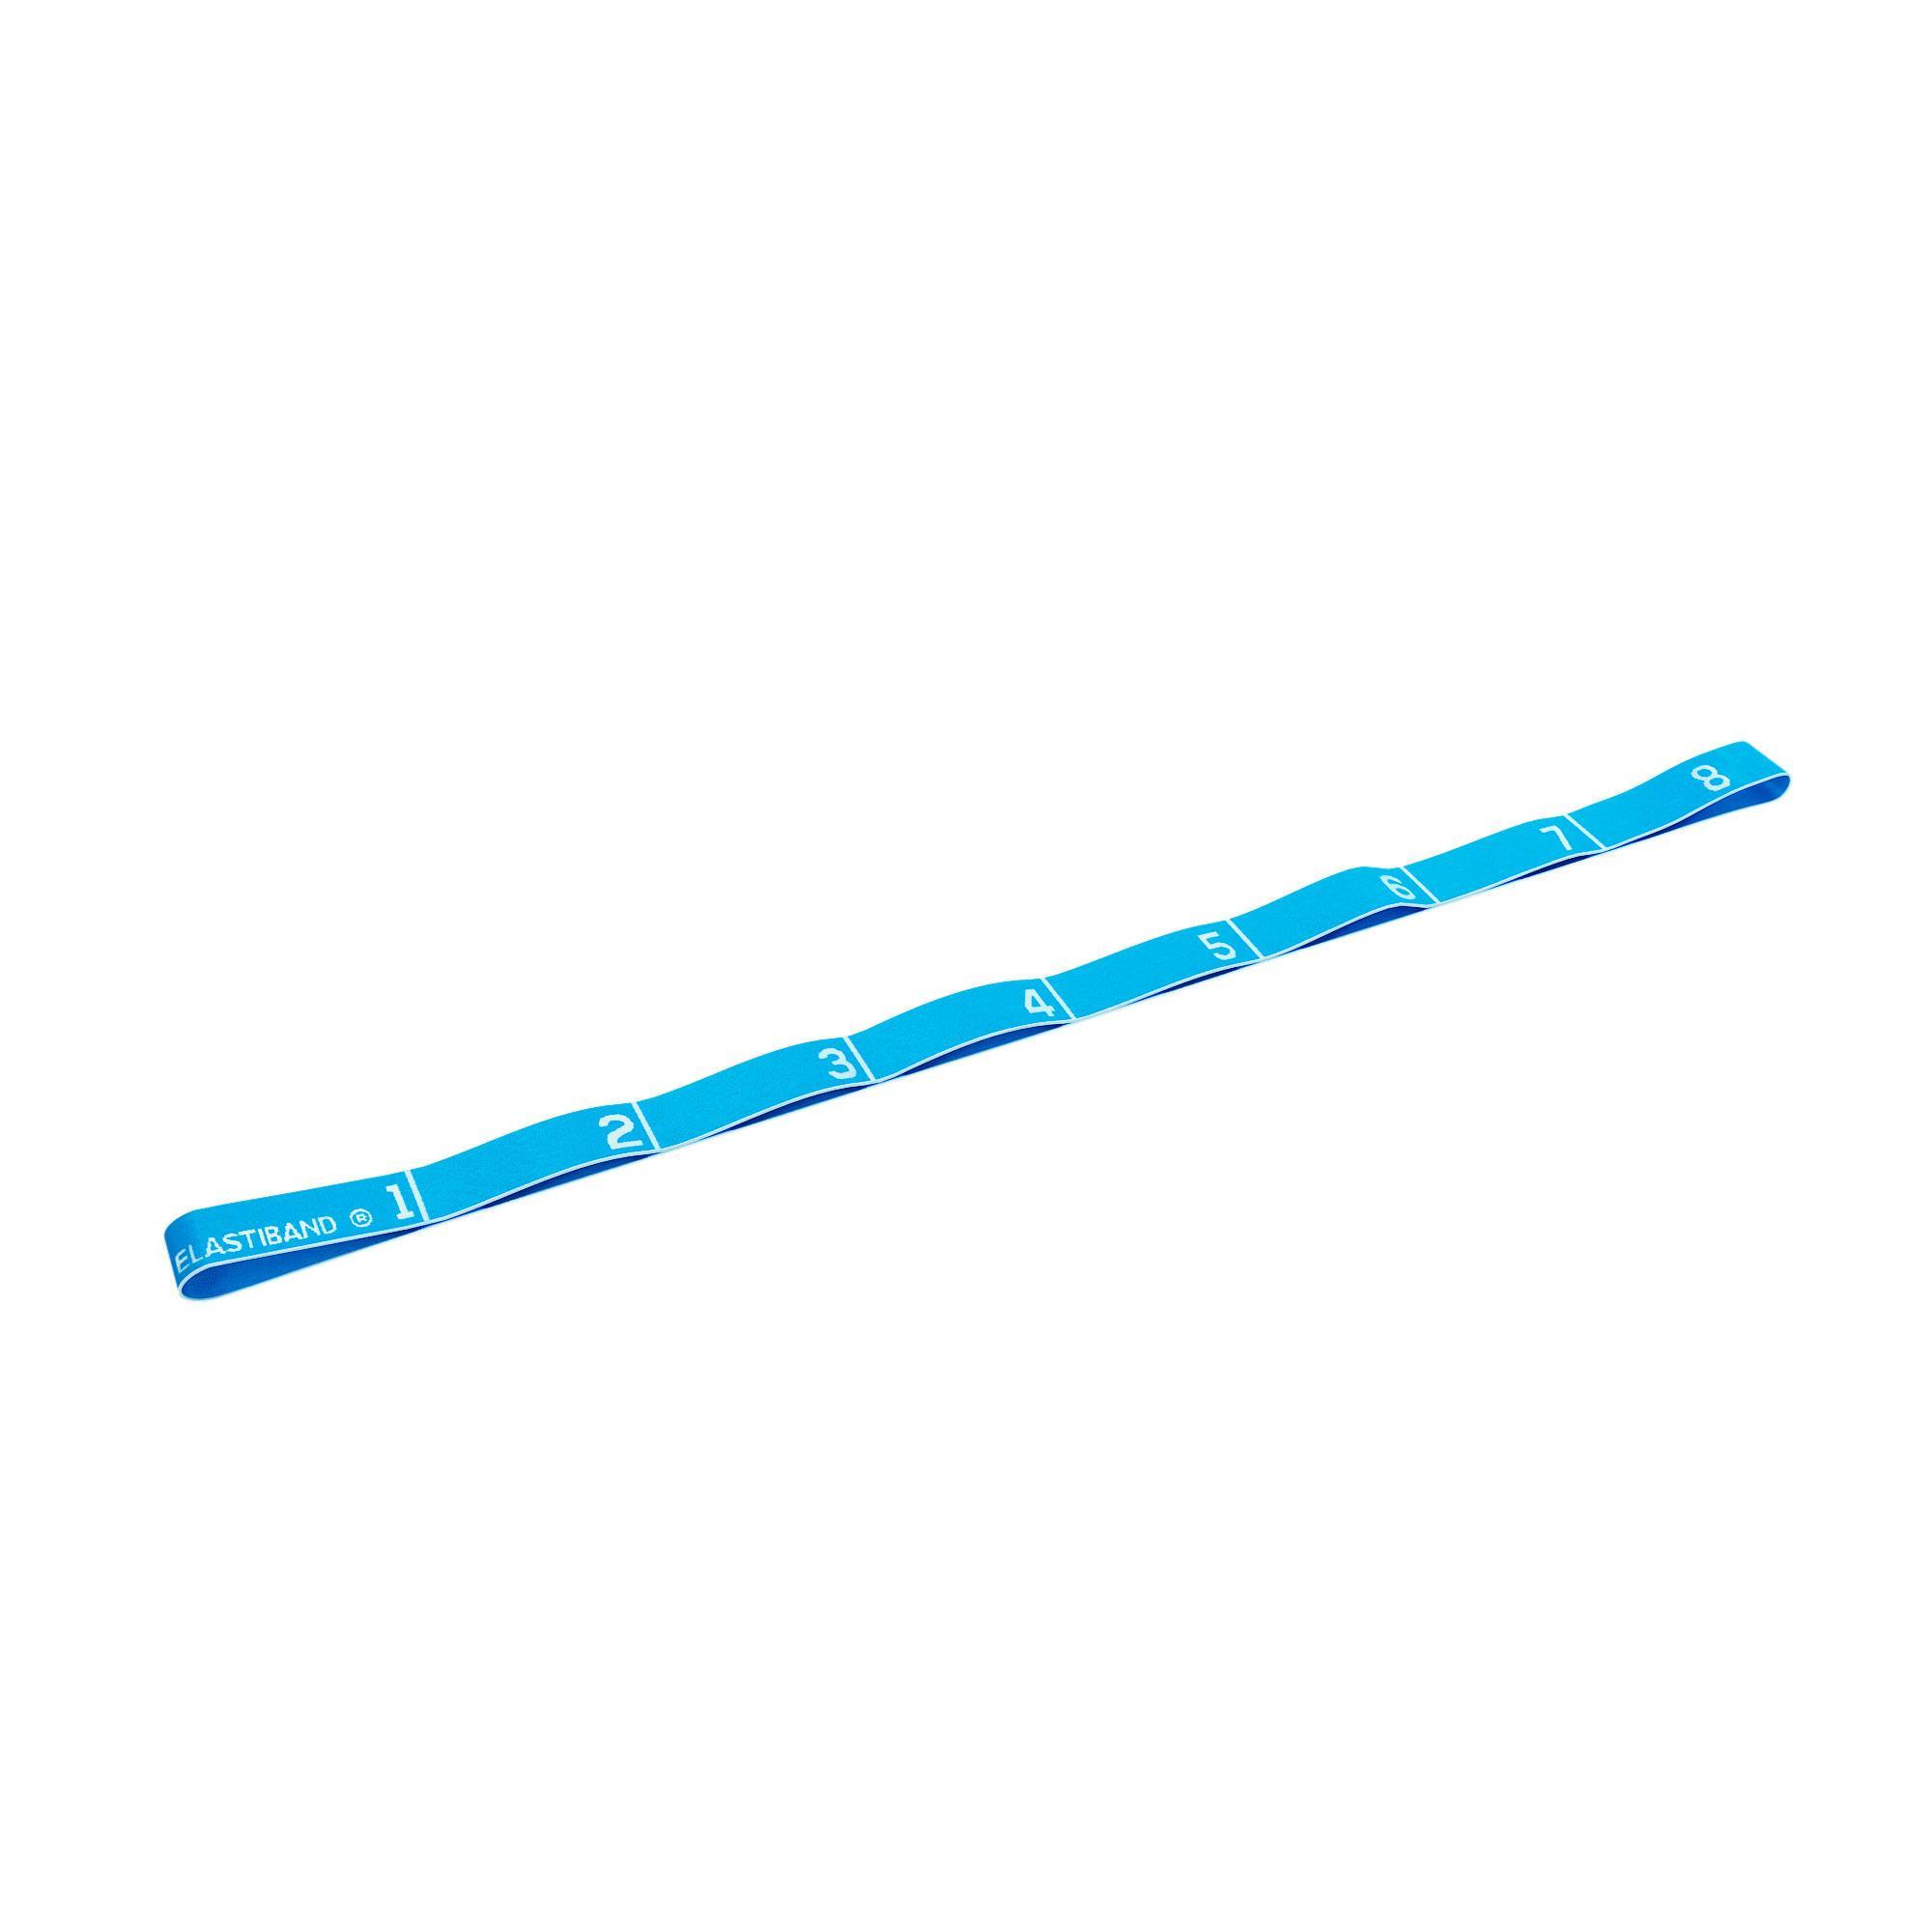 Resistance Bands Uk Decathlon: 500 Pilates Stretching Fabric Elastic Band With Handles